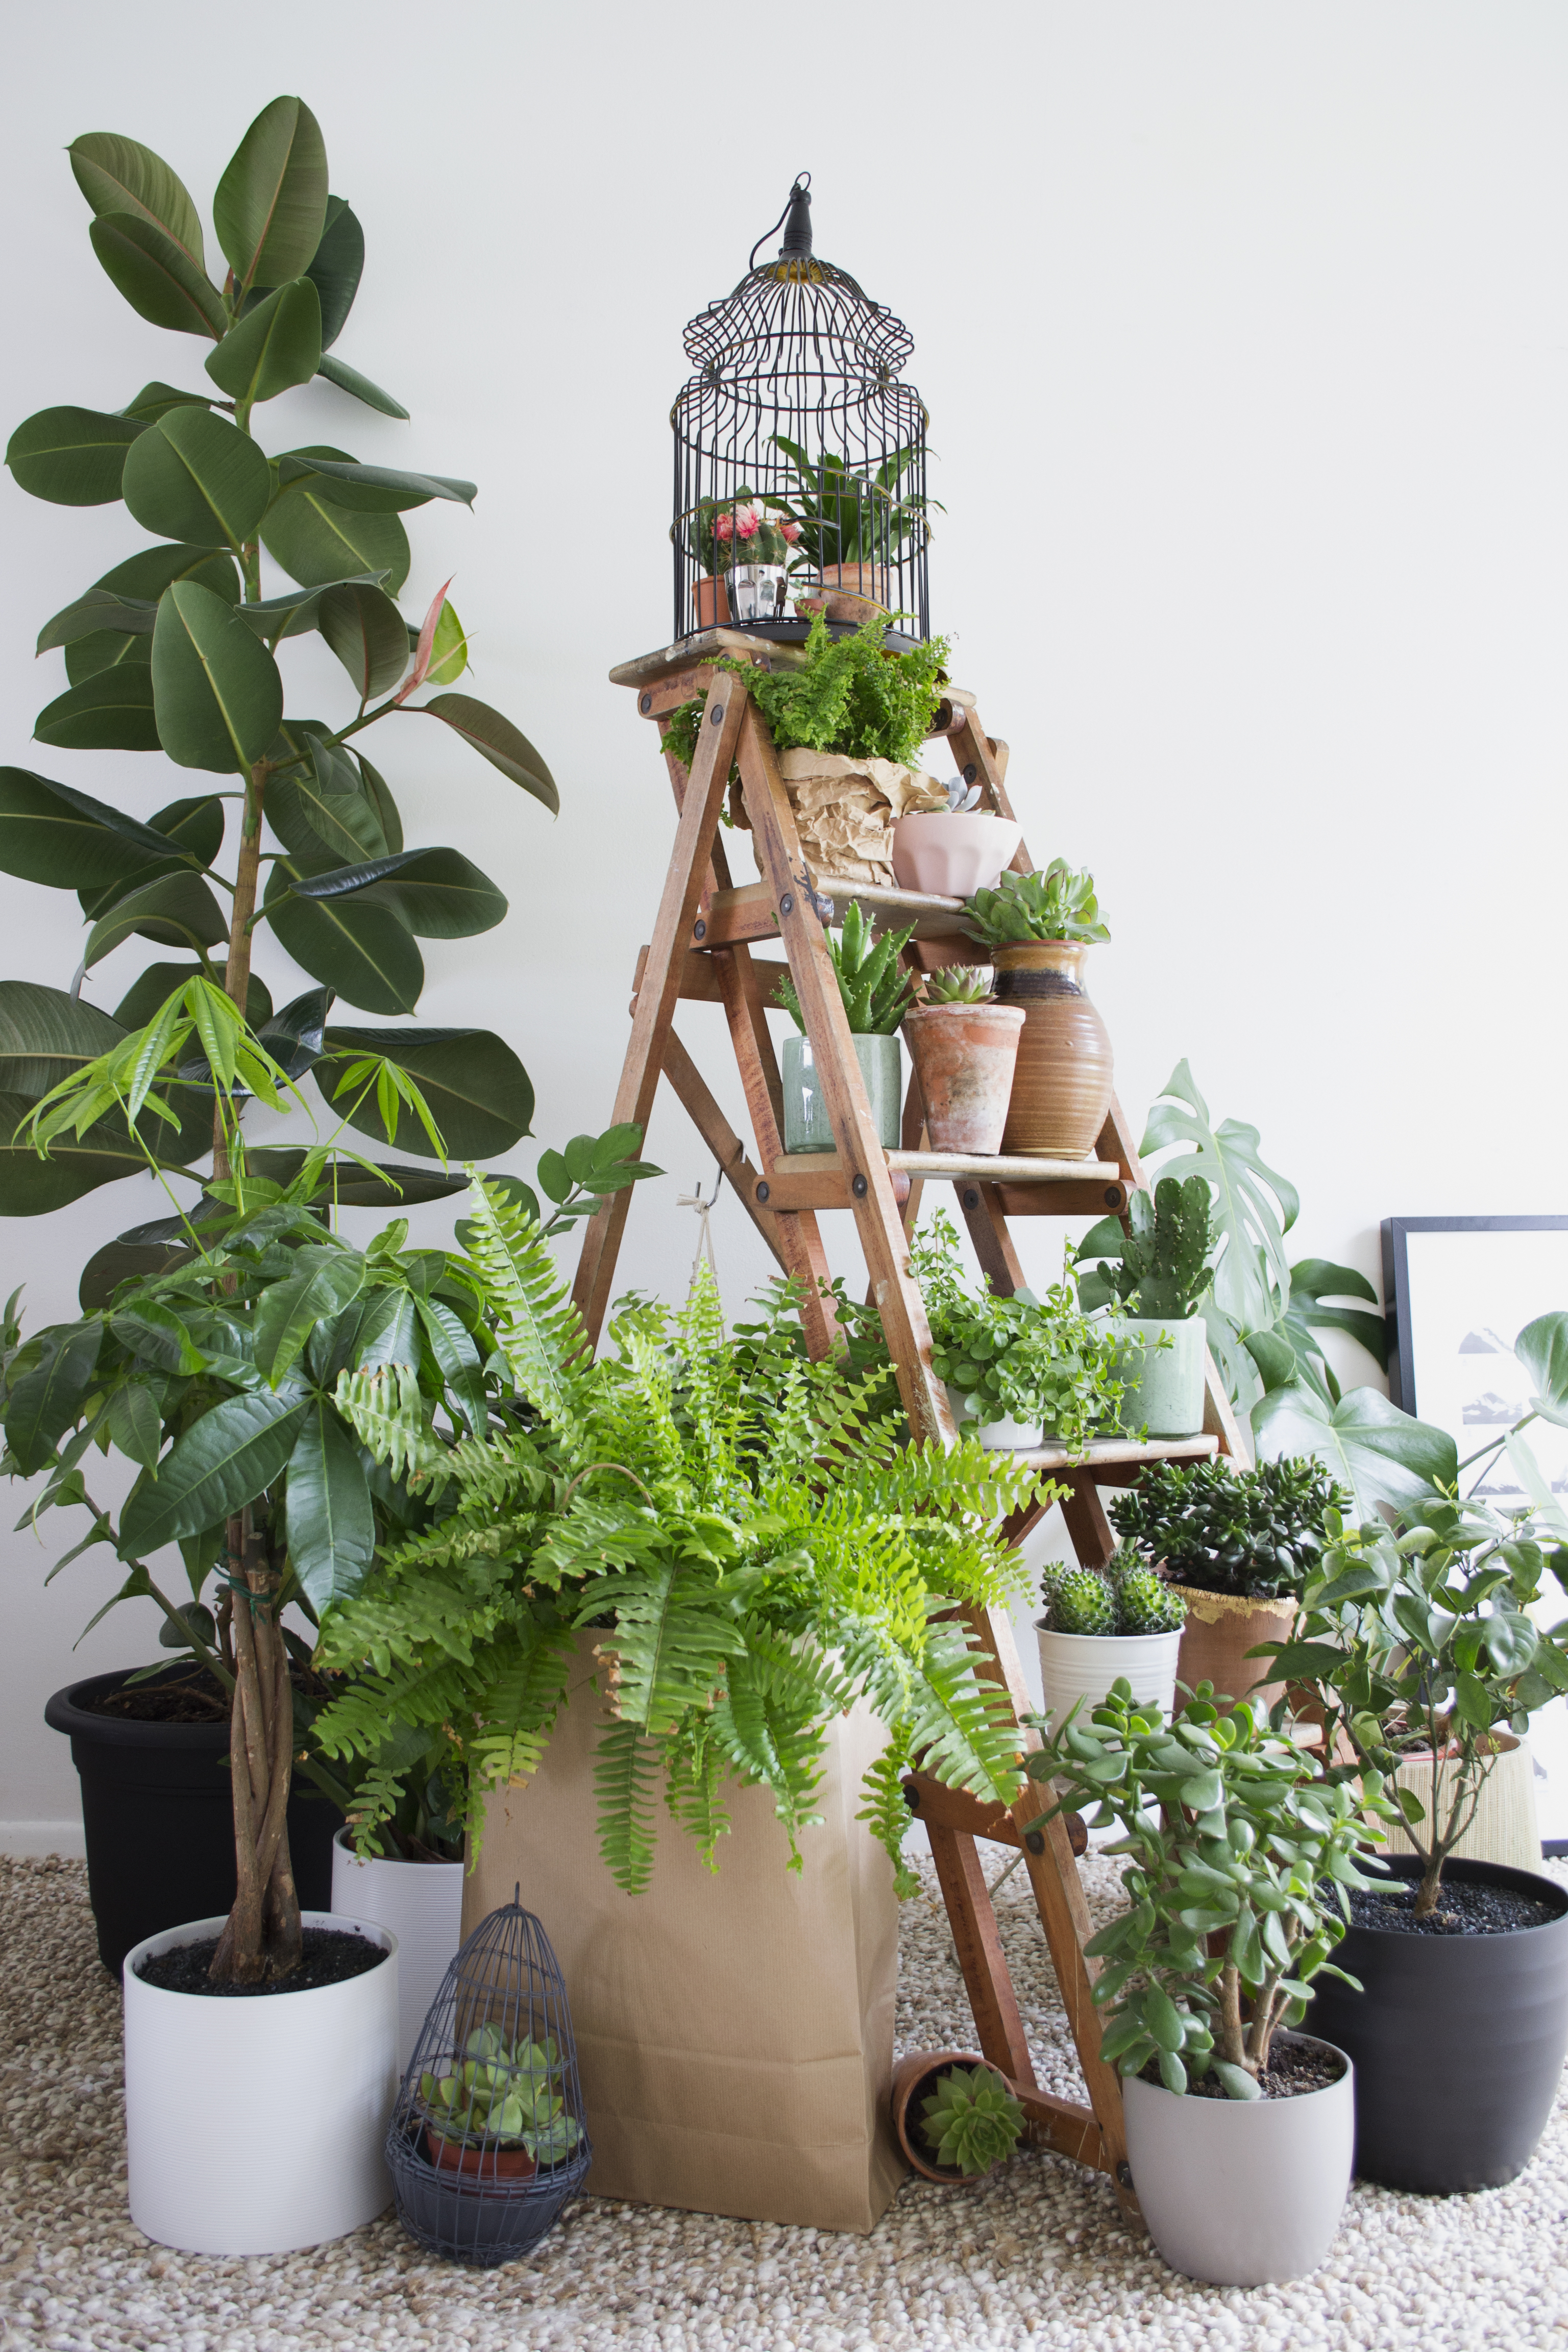 U0027Step Up Your Indoor Garden Game With A Set Of Wooden Ladders That You Can  Fill Top To Bottom With Your Leafy Friends And Make A U0027plant Gangu0027 Just  Like ...